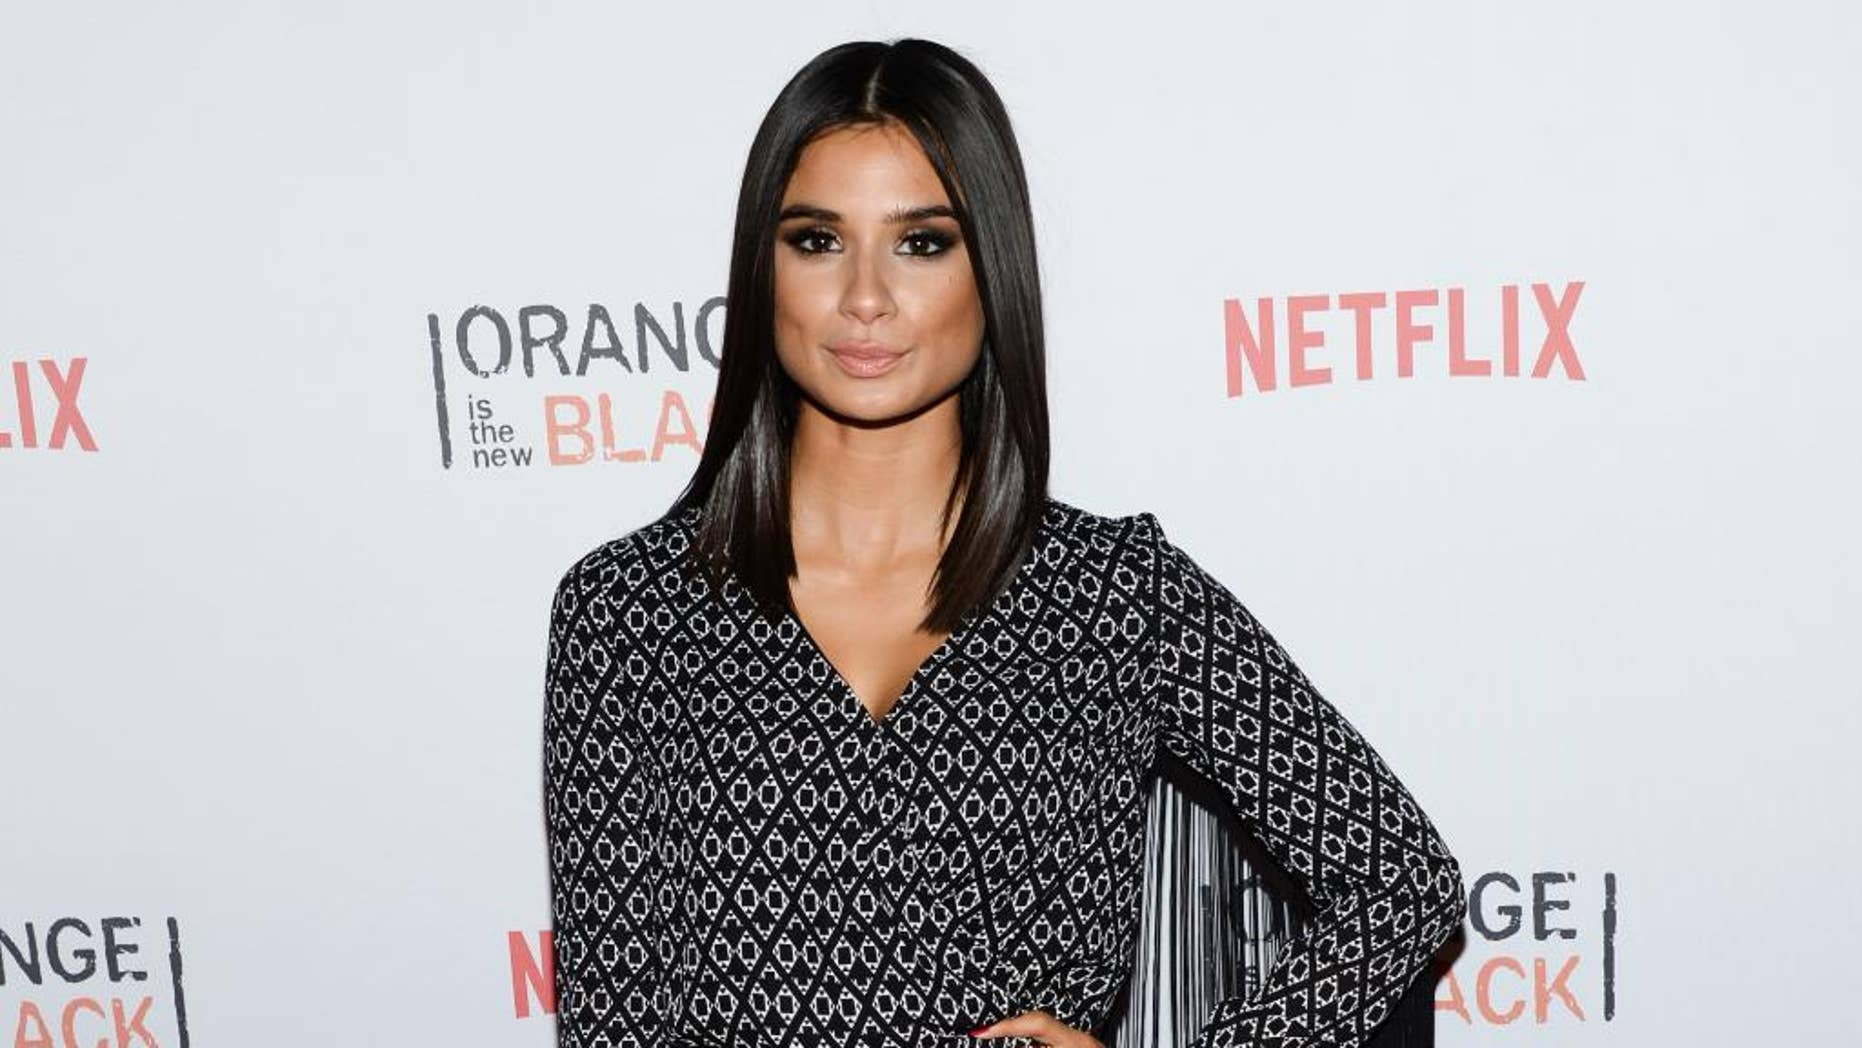 """FILE- IN this June 11, 2015, file photo, actress Diane Guerrero attends Netflix's """"Orange is the New Black"""" ORANGECON Celebration at Skylight Clarkson SQ in New York. The depression, the anxiety and the emotional instability that Guerrero went through due to the separation from her parents are some of the points she writes about in her new memoir """"In the Country We Love: My Family Divided,"""" as well as her later professional development and her work in the successful Netflix series """"Orange Is The New Black"""" and The CW's """"Jane The Virgin."""" (Photo by Evan Agostini/Invision/AP)"""